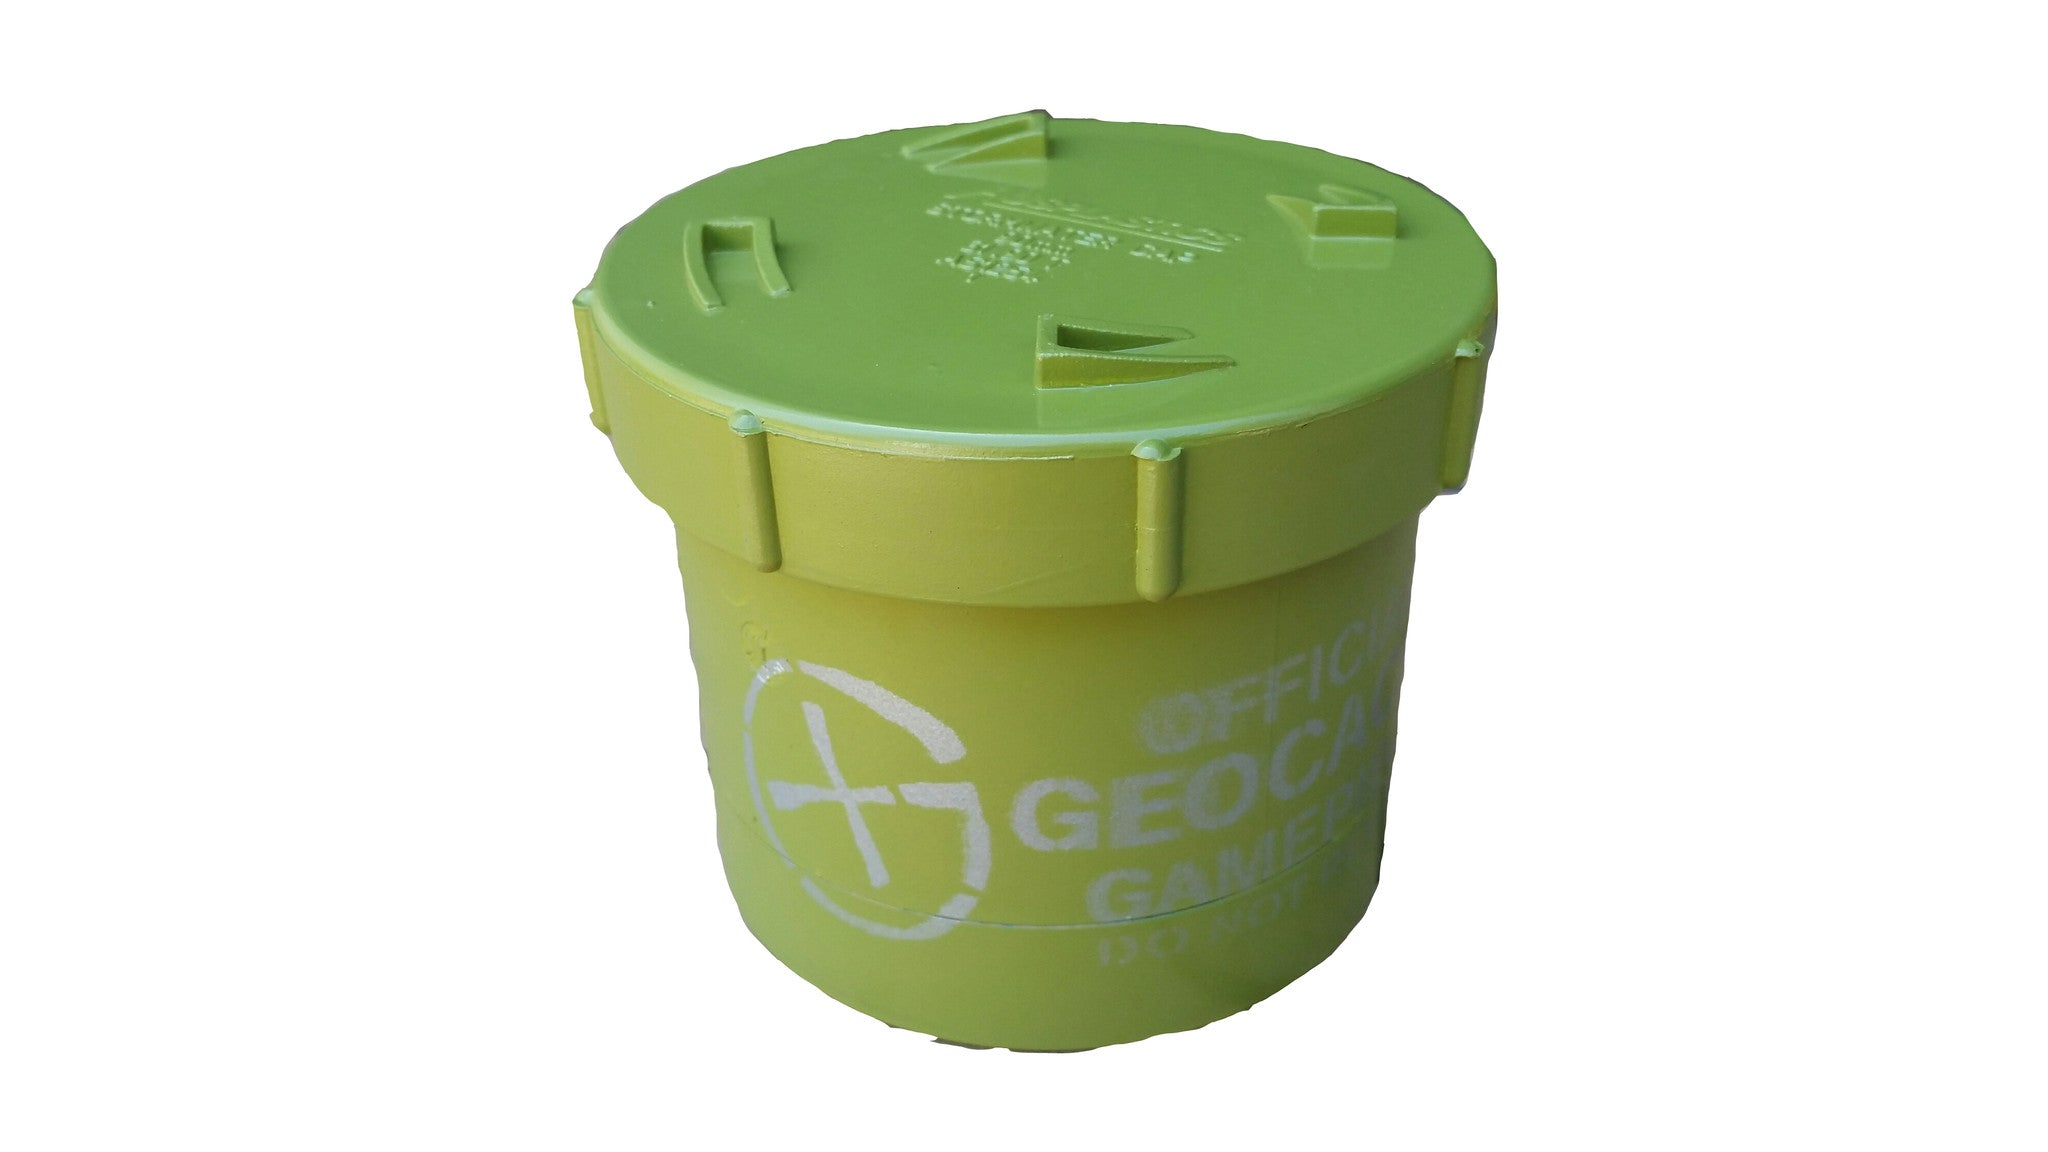 Short 90mm PVC Geocache Container - Green - Ground Zero Geocaching Supplies